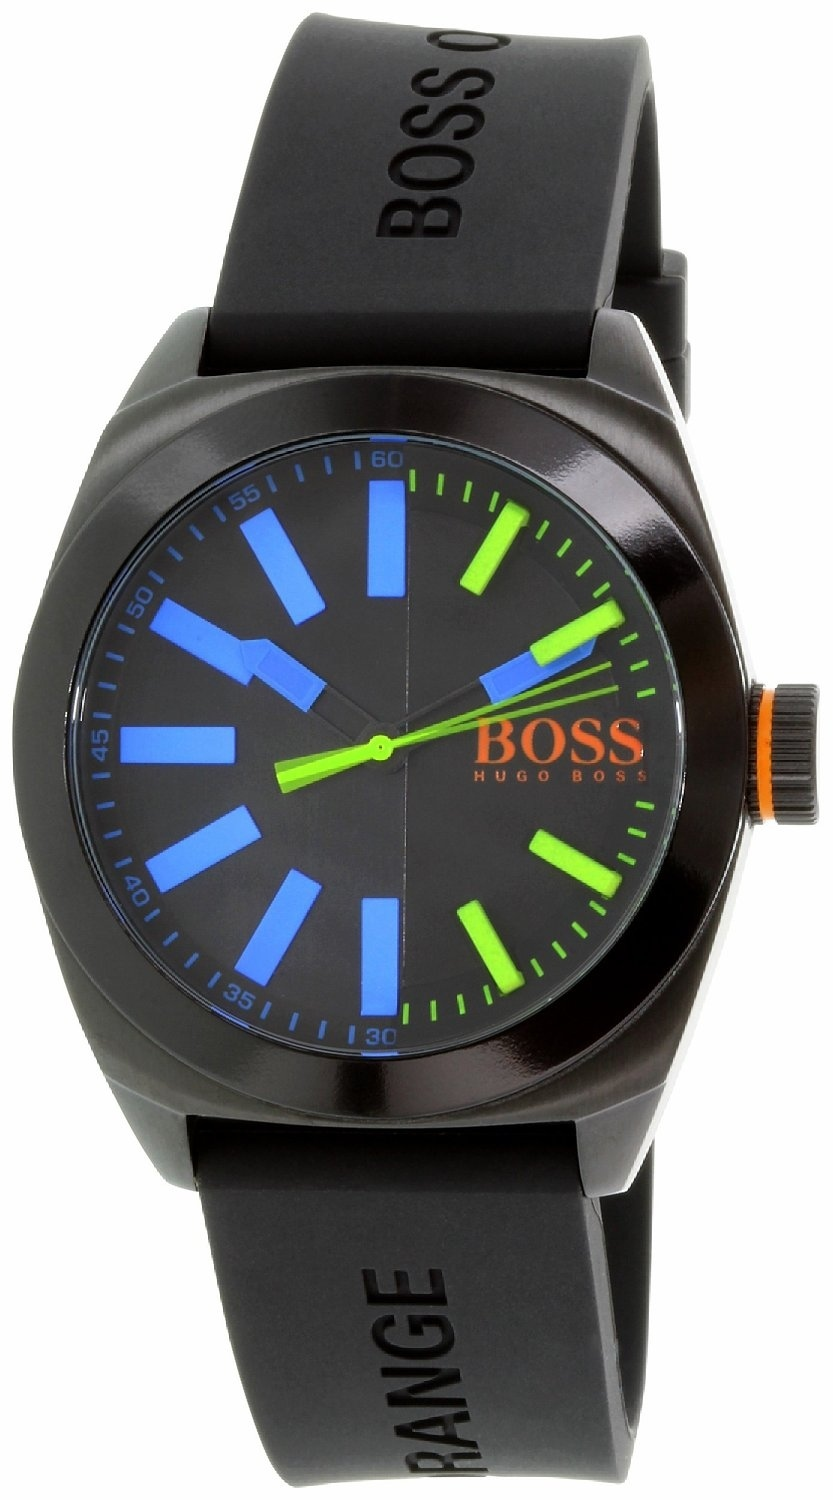 Hugo Boss 99999 Herrklocka 1513053 Svart/Gummi Ø45 mm - Hugo Boss